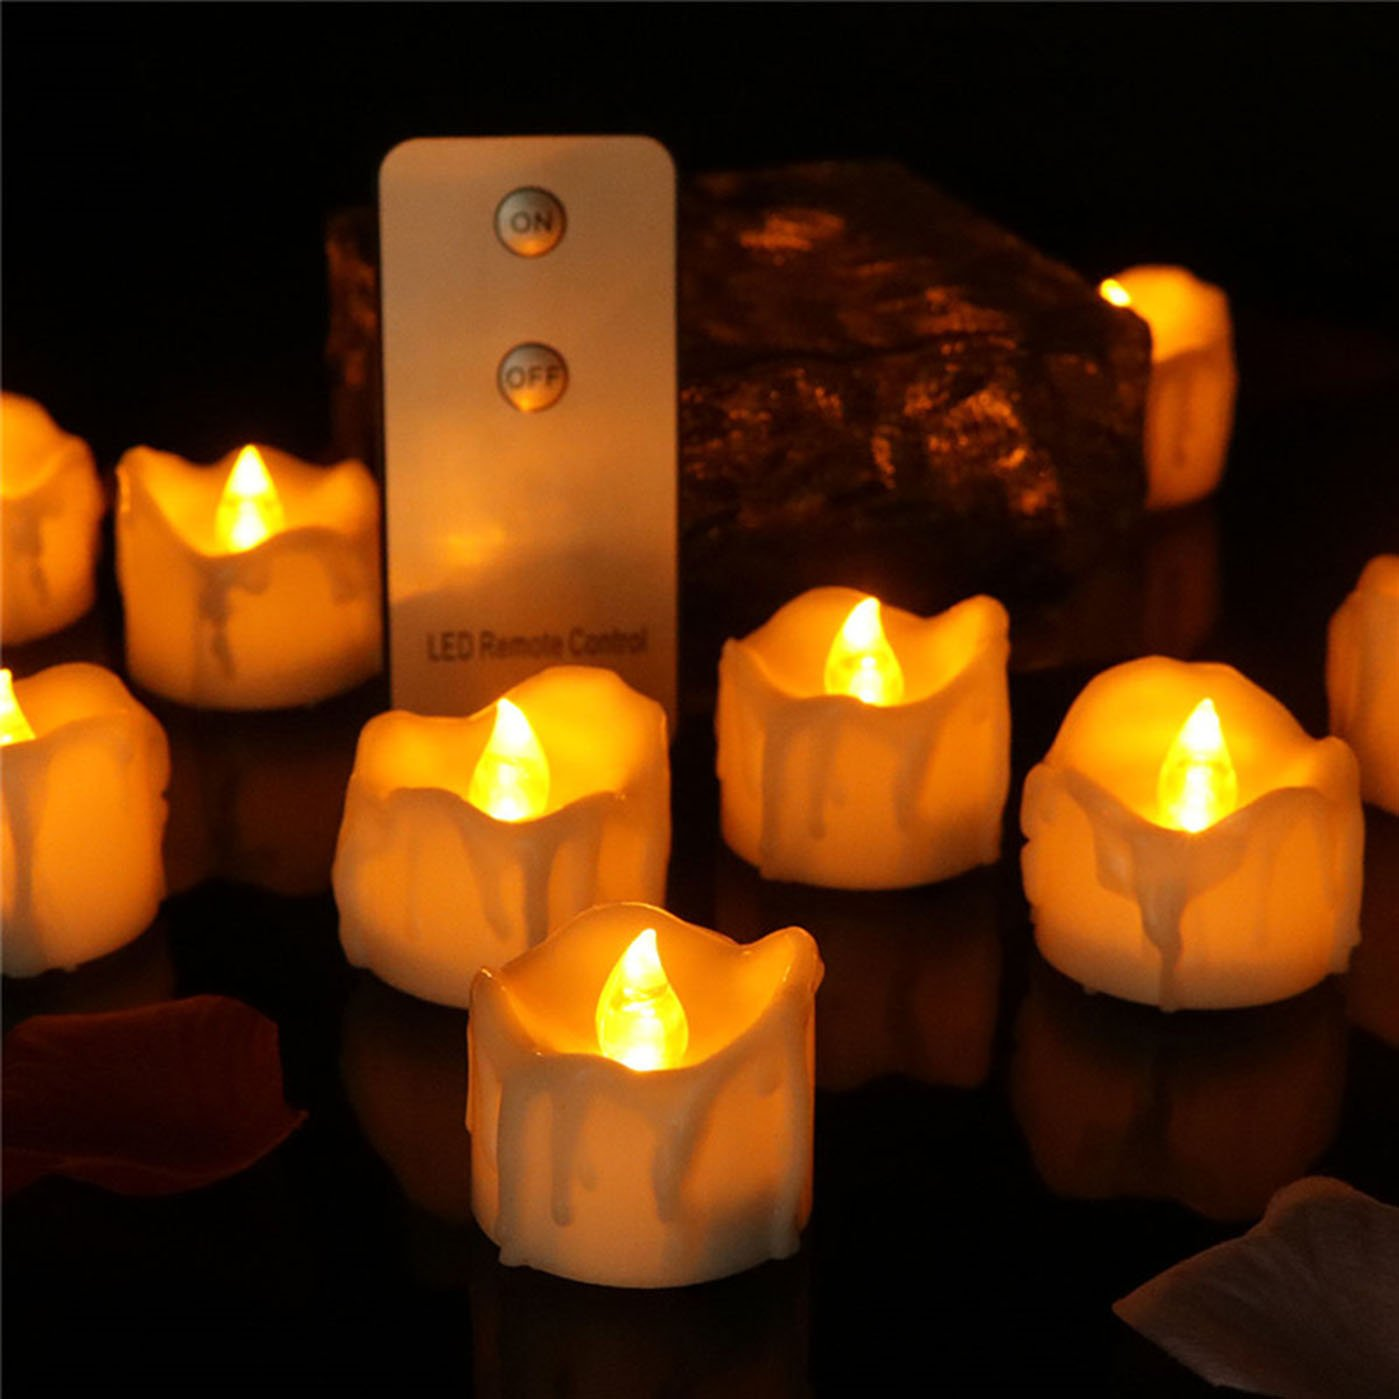 Dellukee Battery Operated LED Tea Lights with Remote 96pcs Cute Drop Tear Yellow Flickering 1.2 Inch Flameless Candles for Halloween Christmas New Year Family Party Decoration